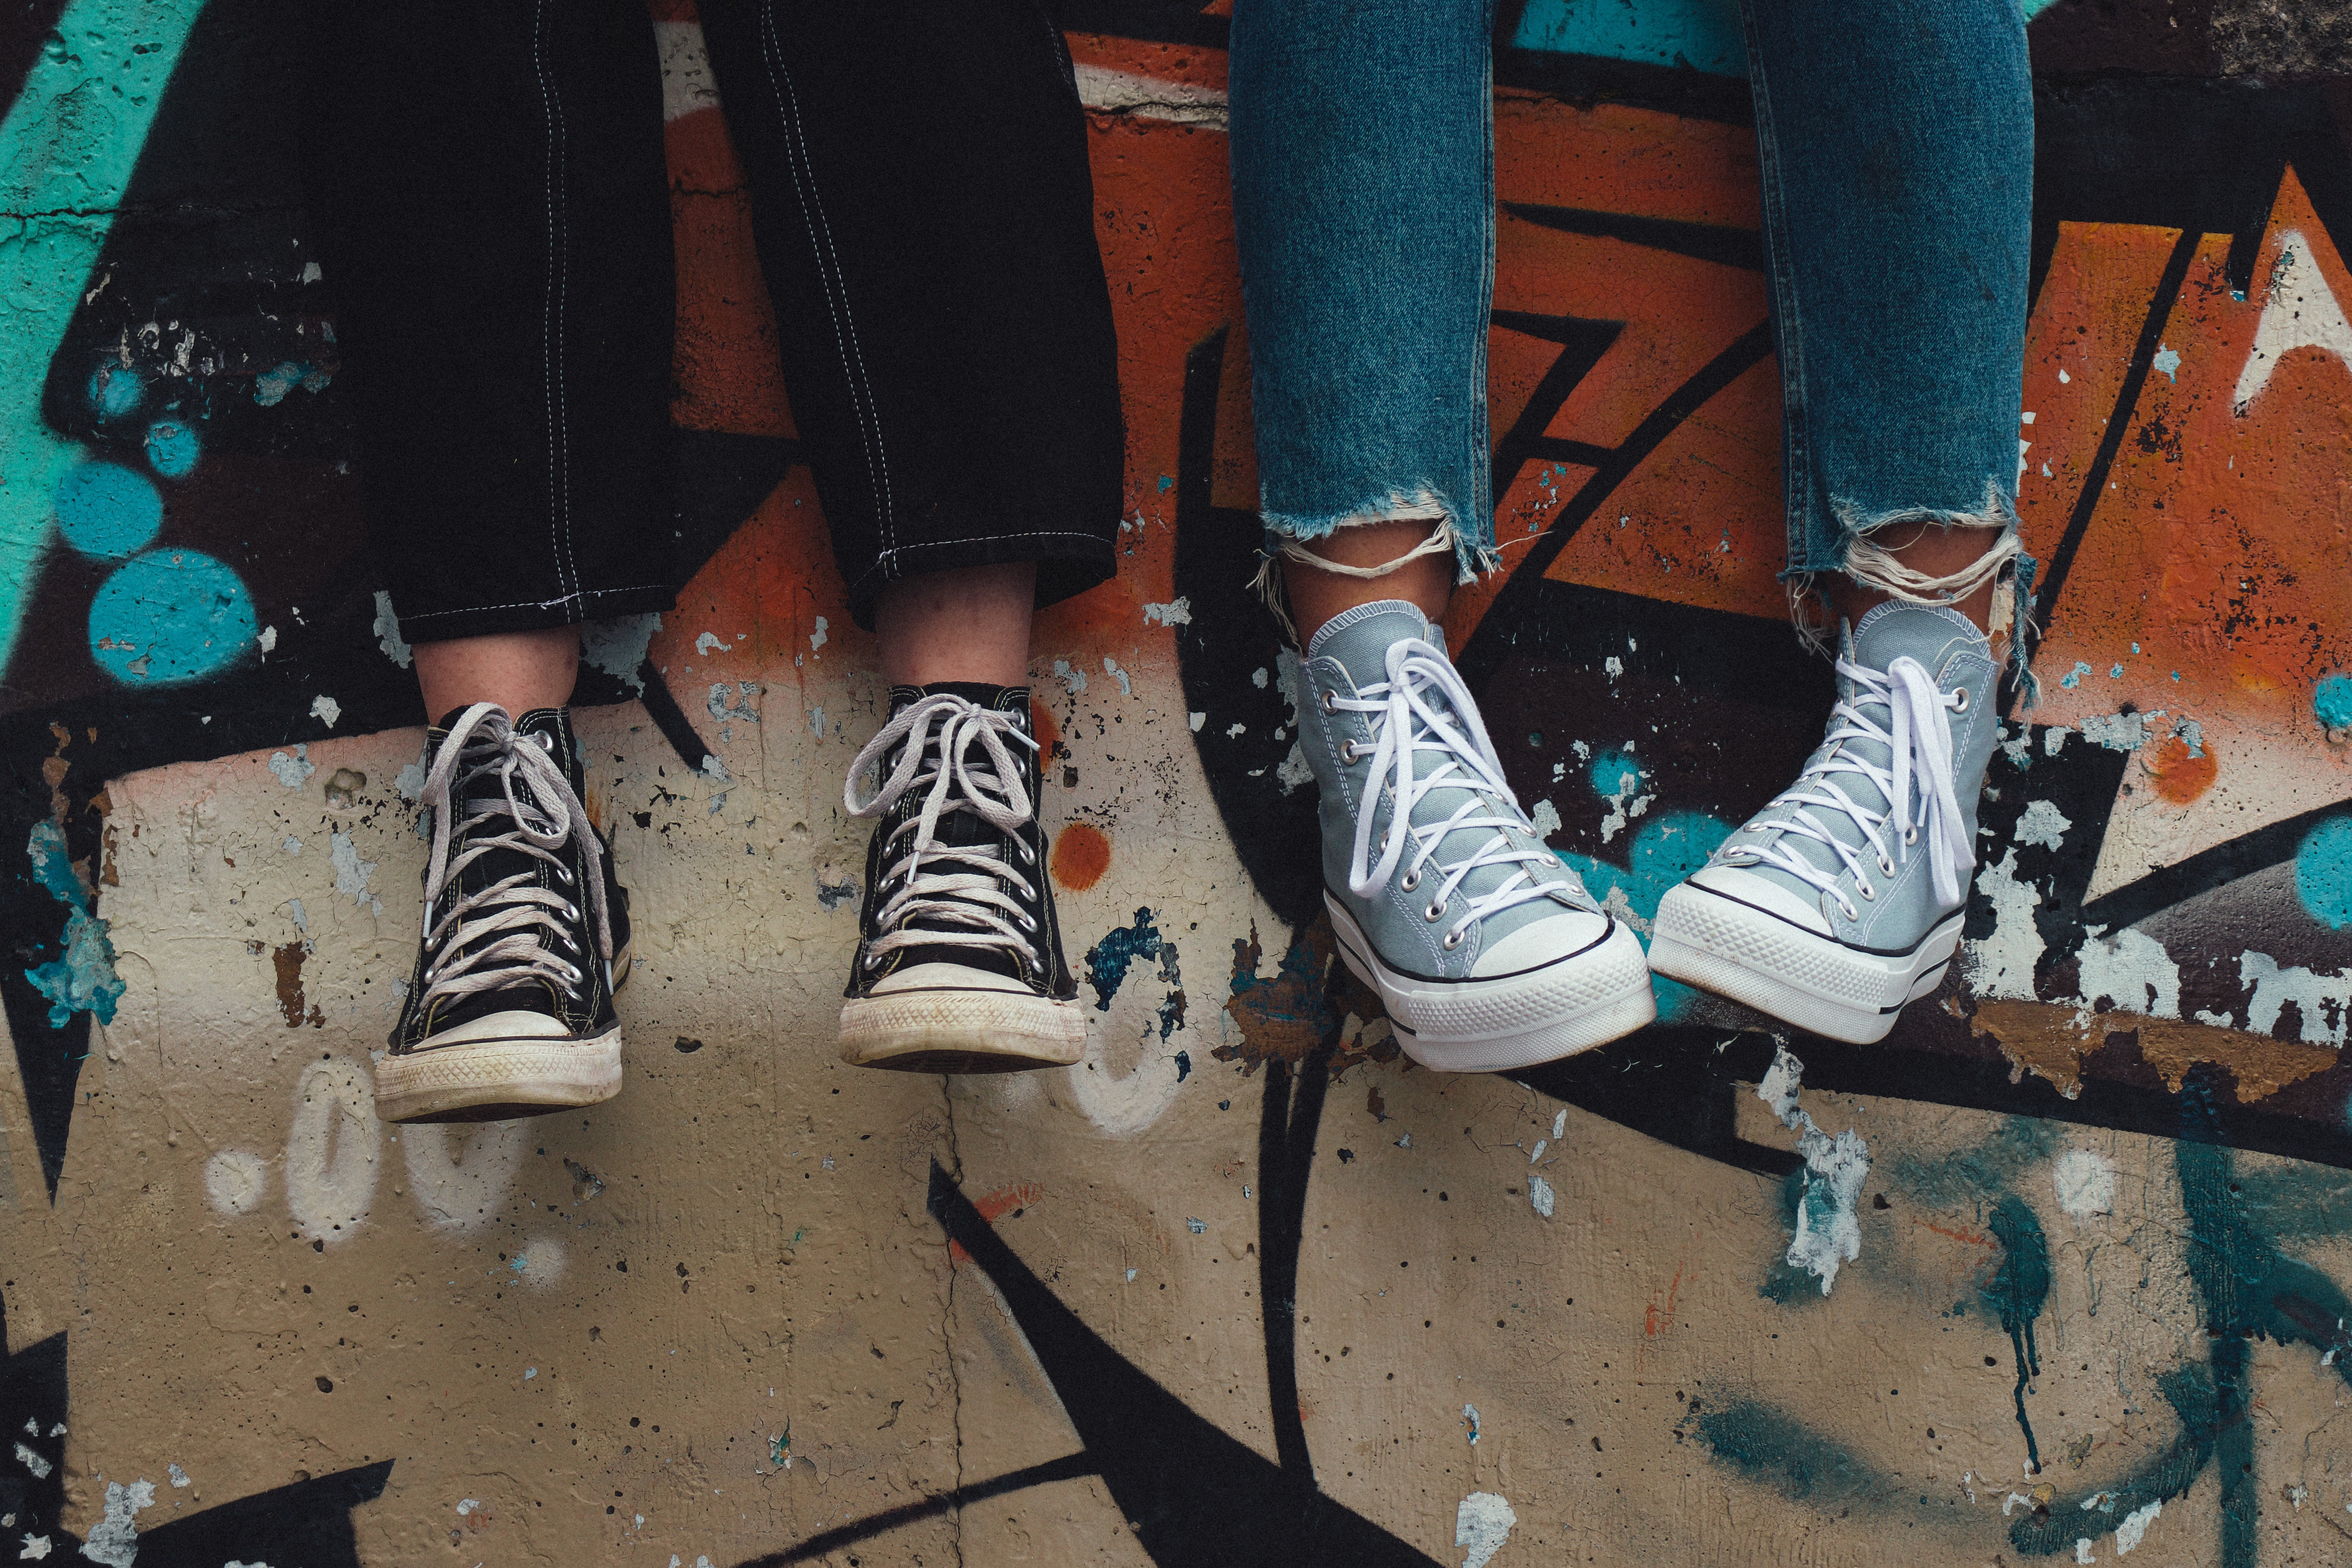 Some teenagers seem to sit on a wall wearing trainers, only their feet can be seen in front of some grafitti